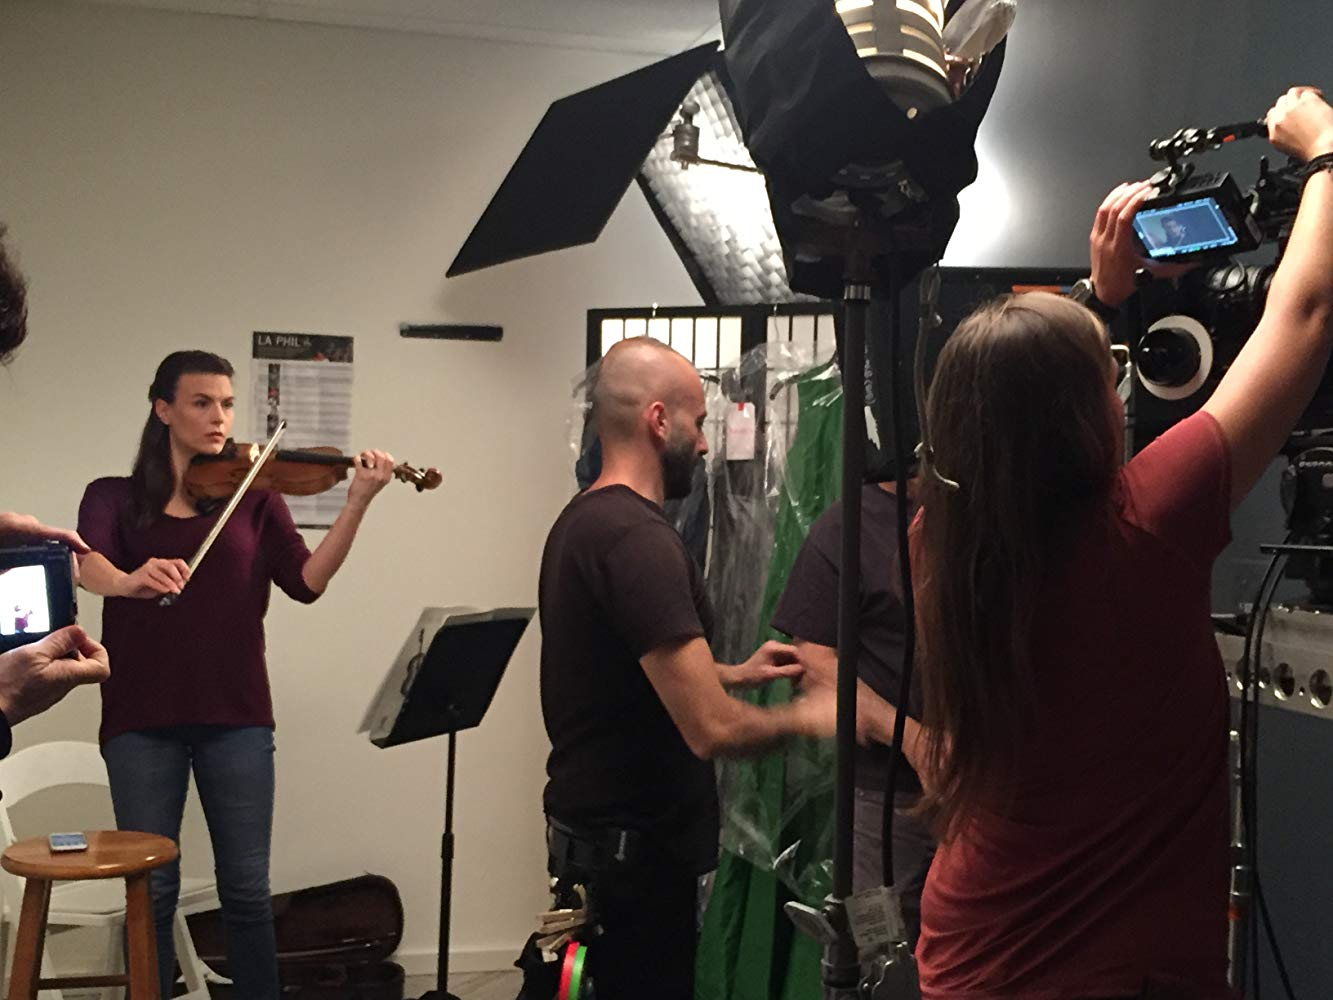 Set up for a scene taking place in a musician's practice room.